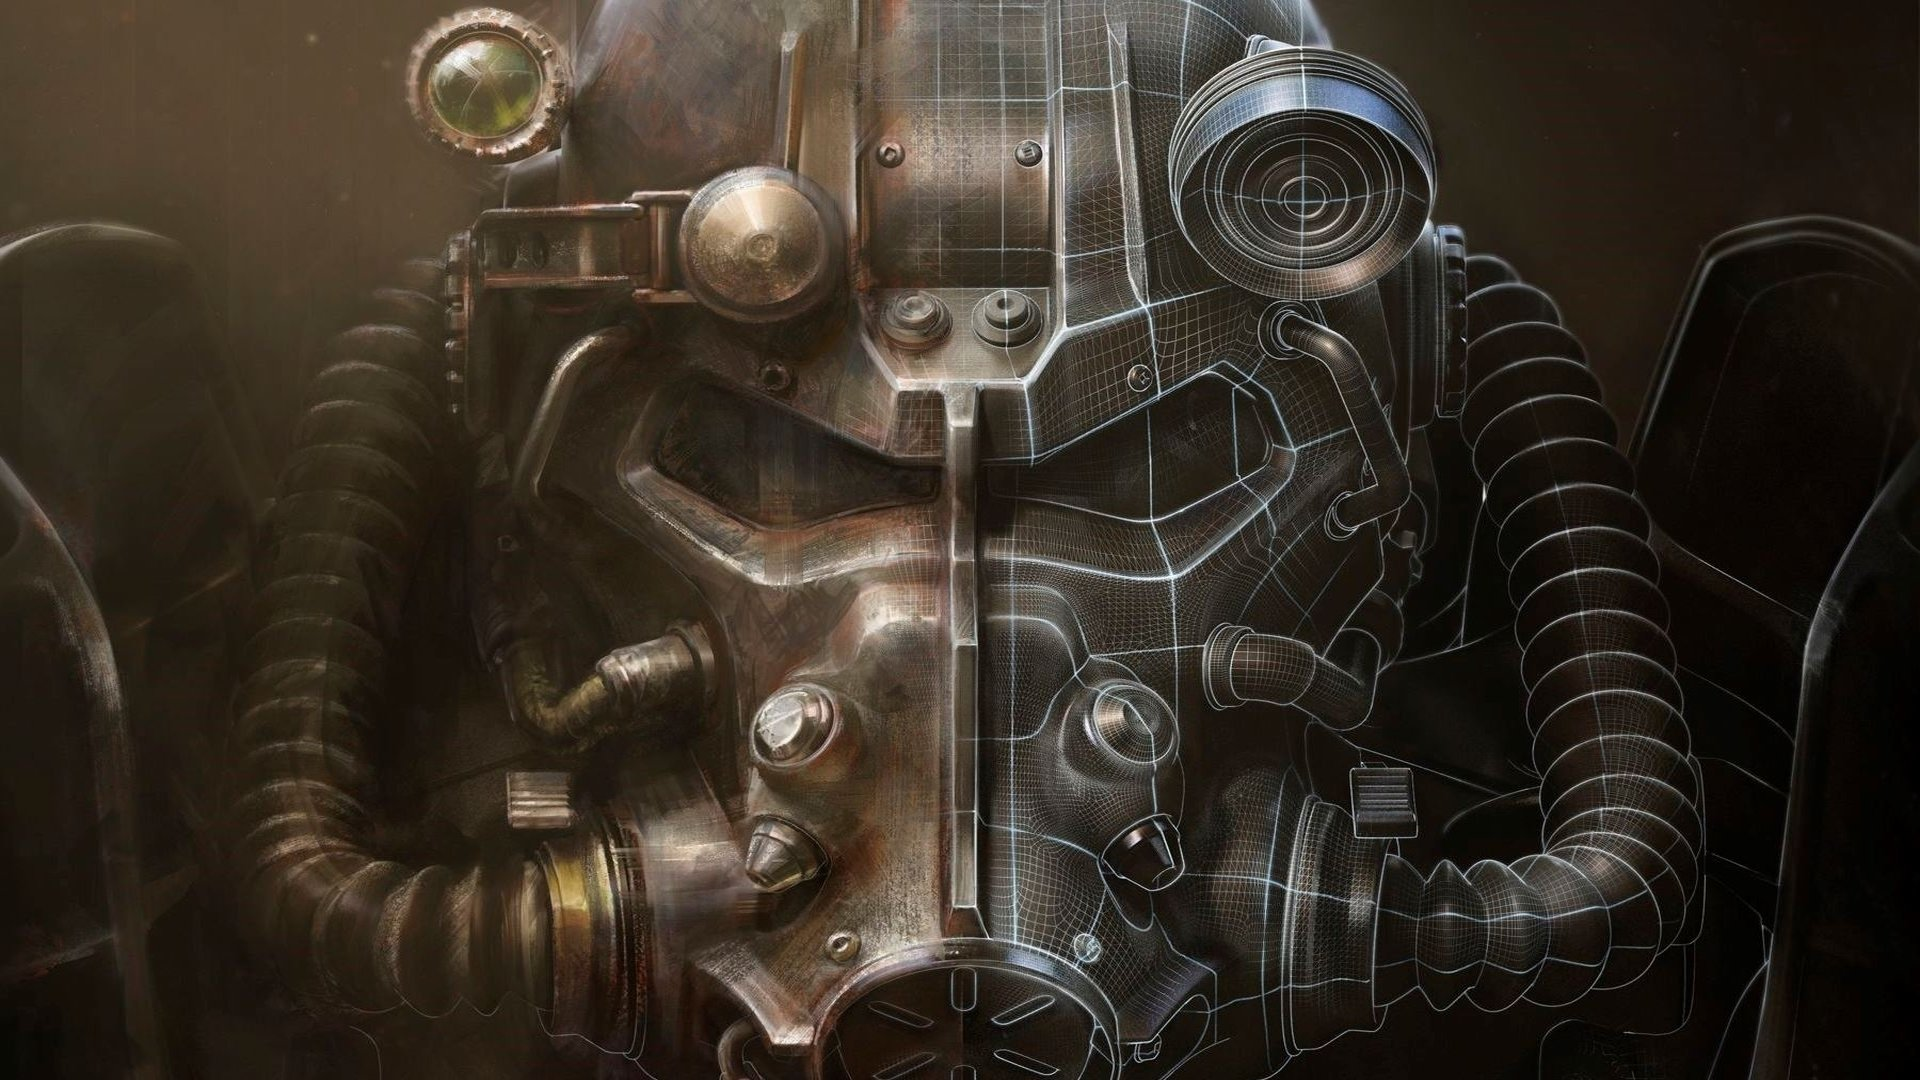 588 Fallout Hd Wallpapers Background Images Wallpaper Abyss